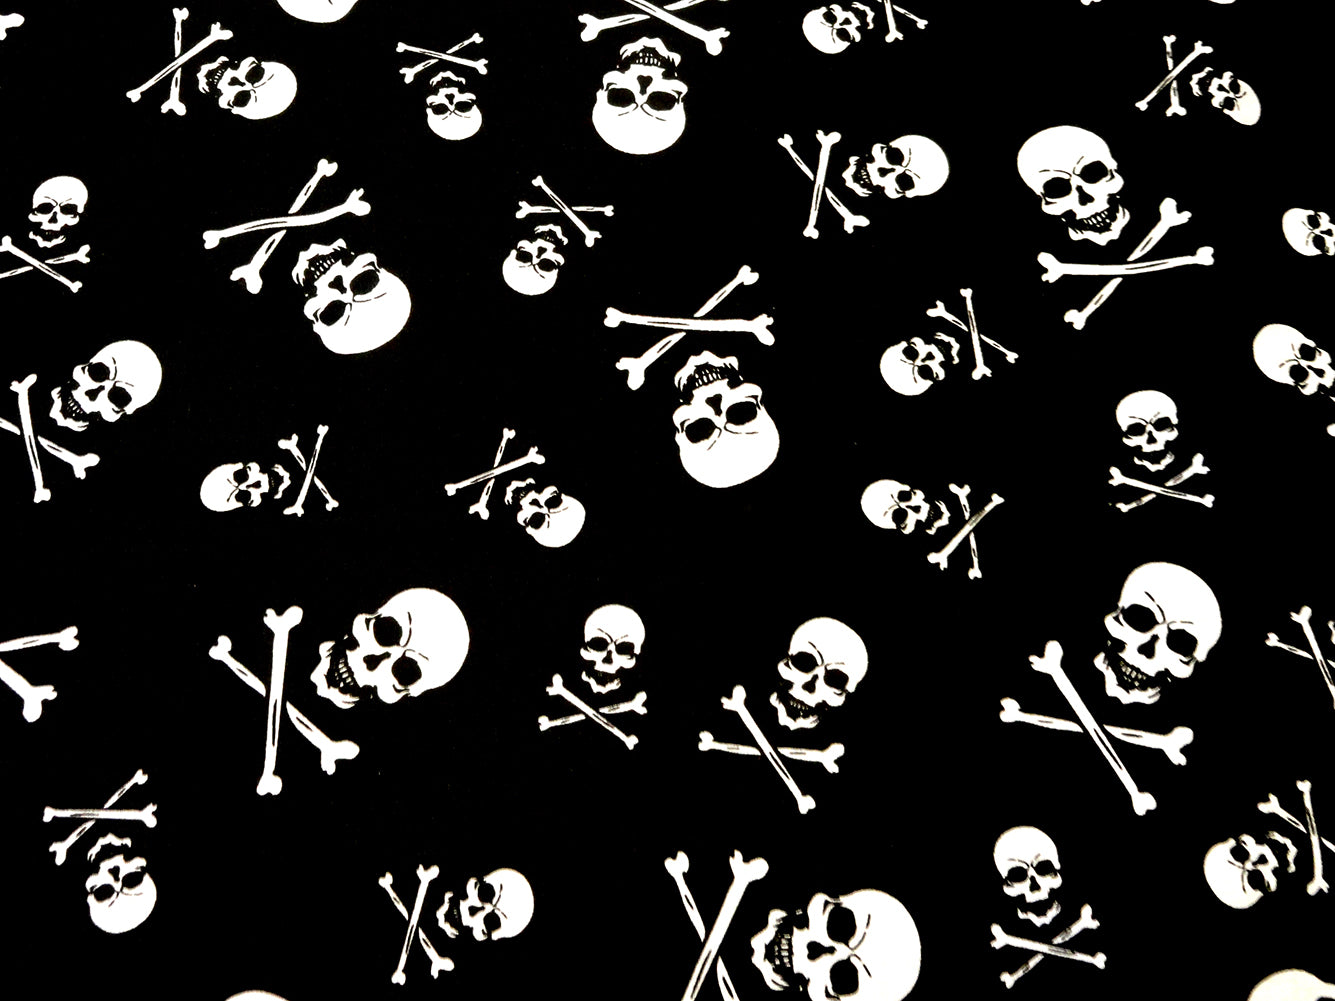 Skull and Crossbones Bandana black